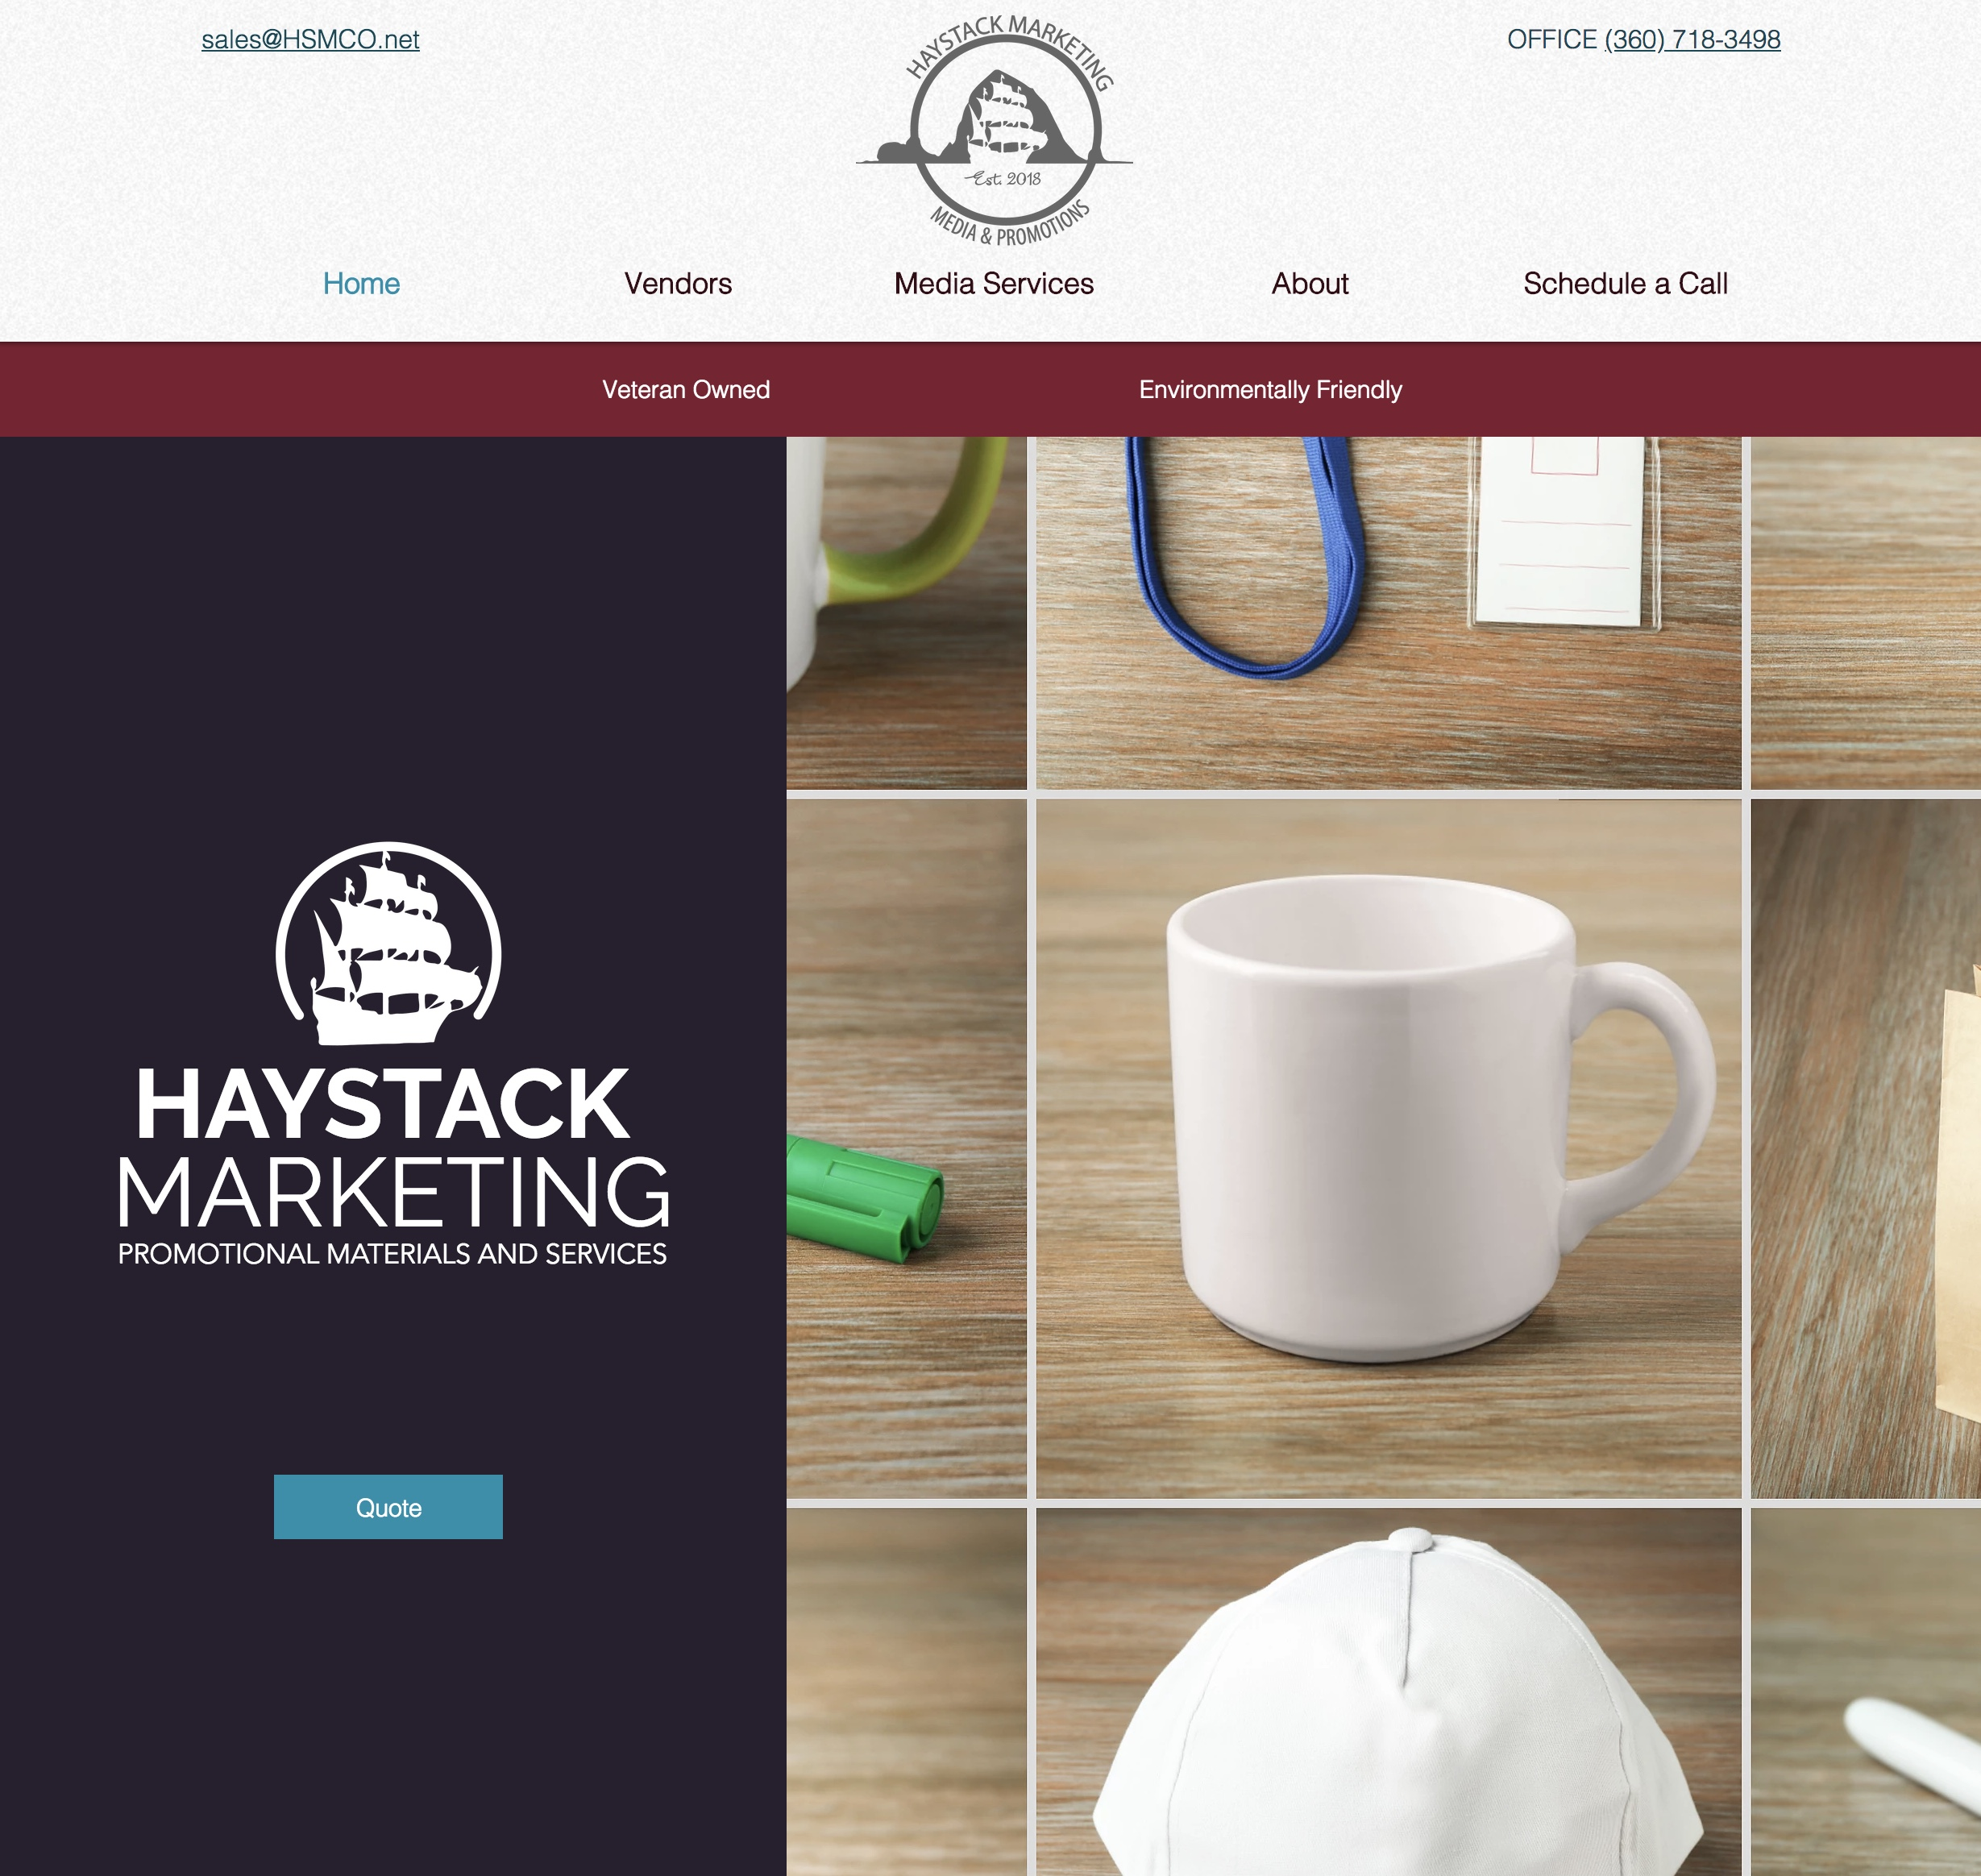 Haystack Marketing